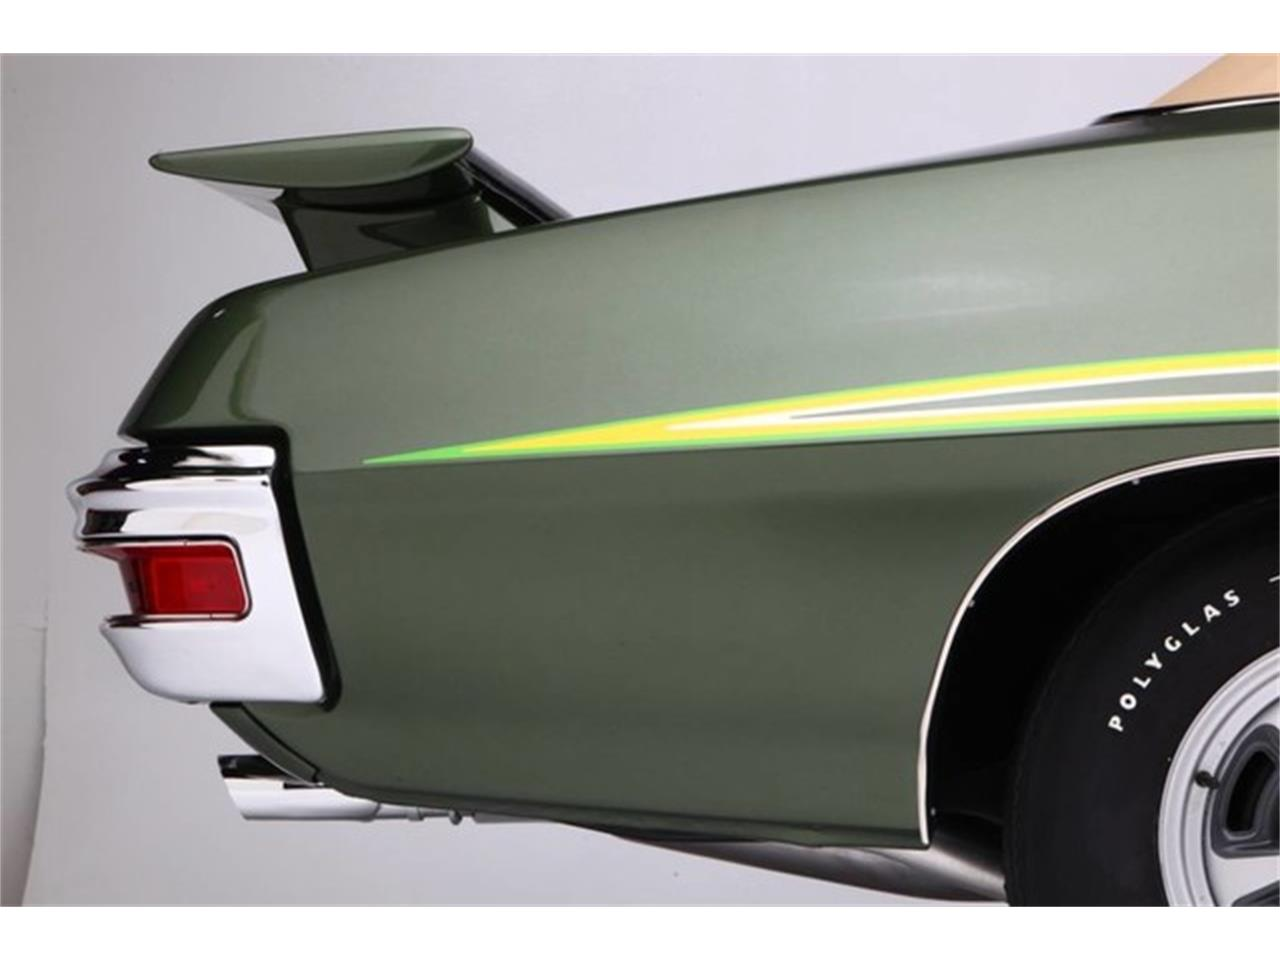 Large Picture of '70 Pontiac GTO (The Judge) located in Clifton Park New York - $219,000.00 - PU25